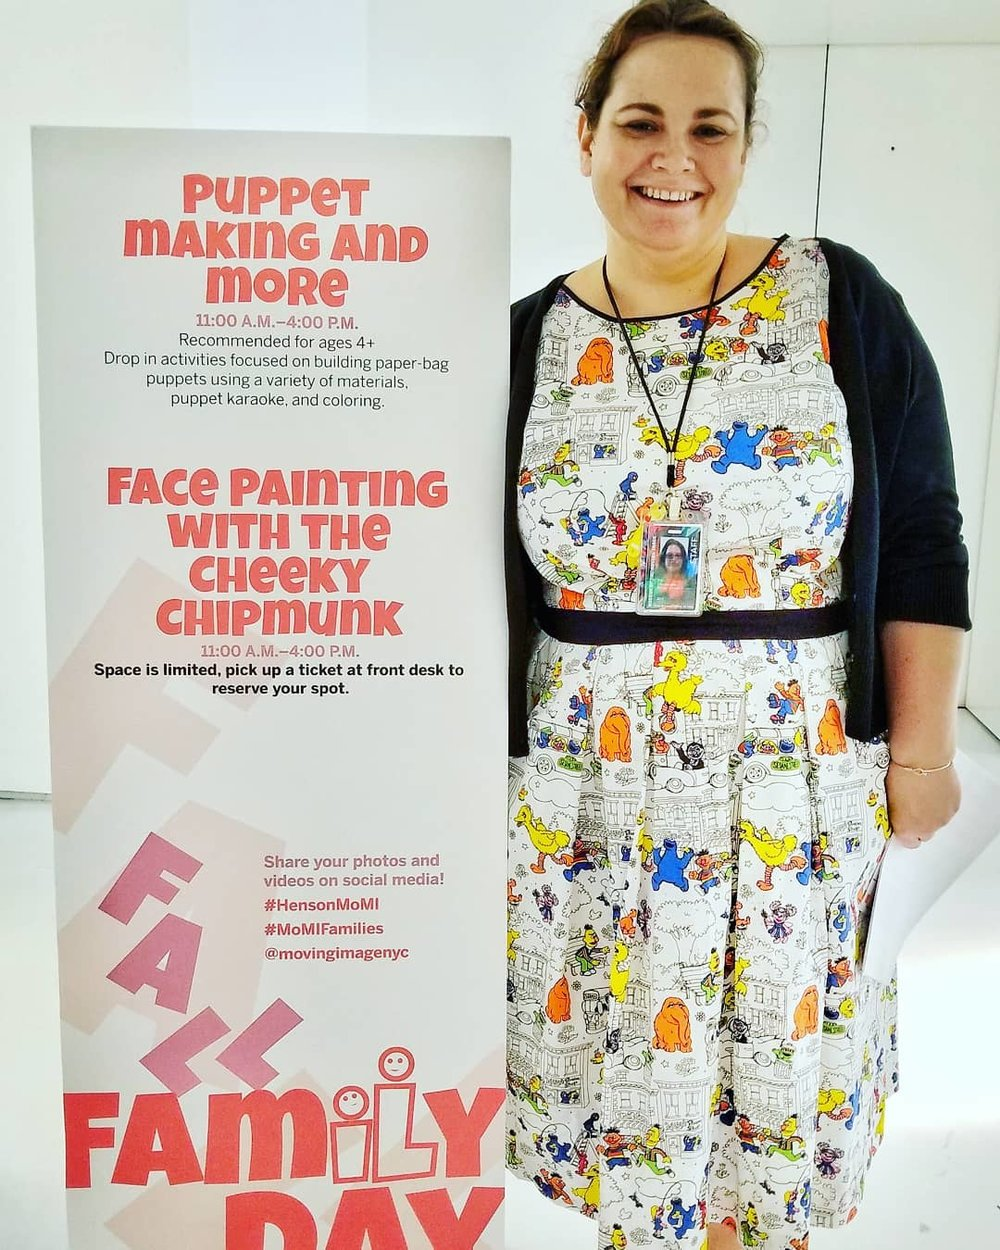 The Cheeky Chipmunk Face Painting at  The Museum of The Moving Image  for  the Jim Henson Exhibit  on Fall Family Day, 2018.